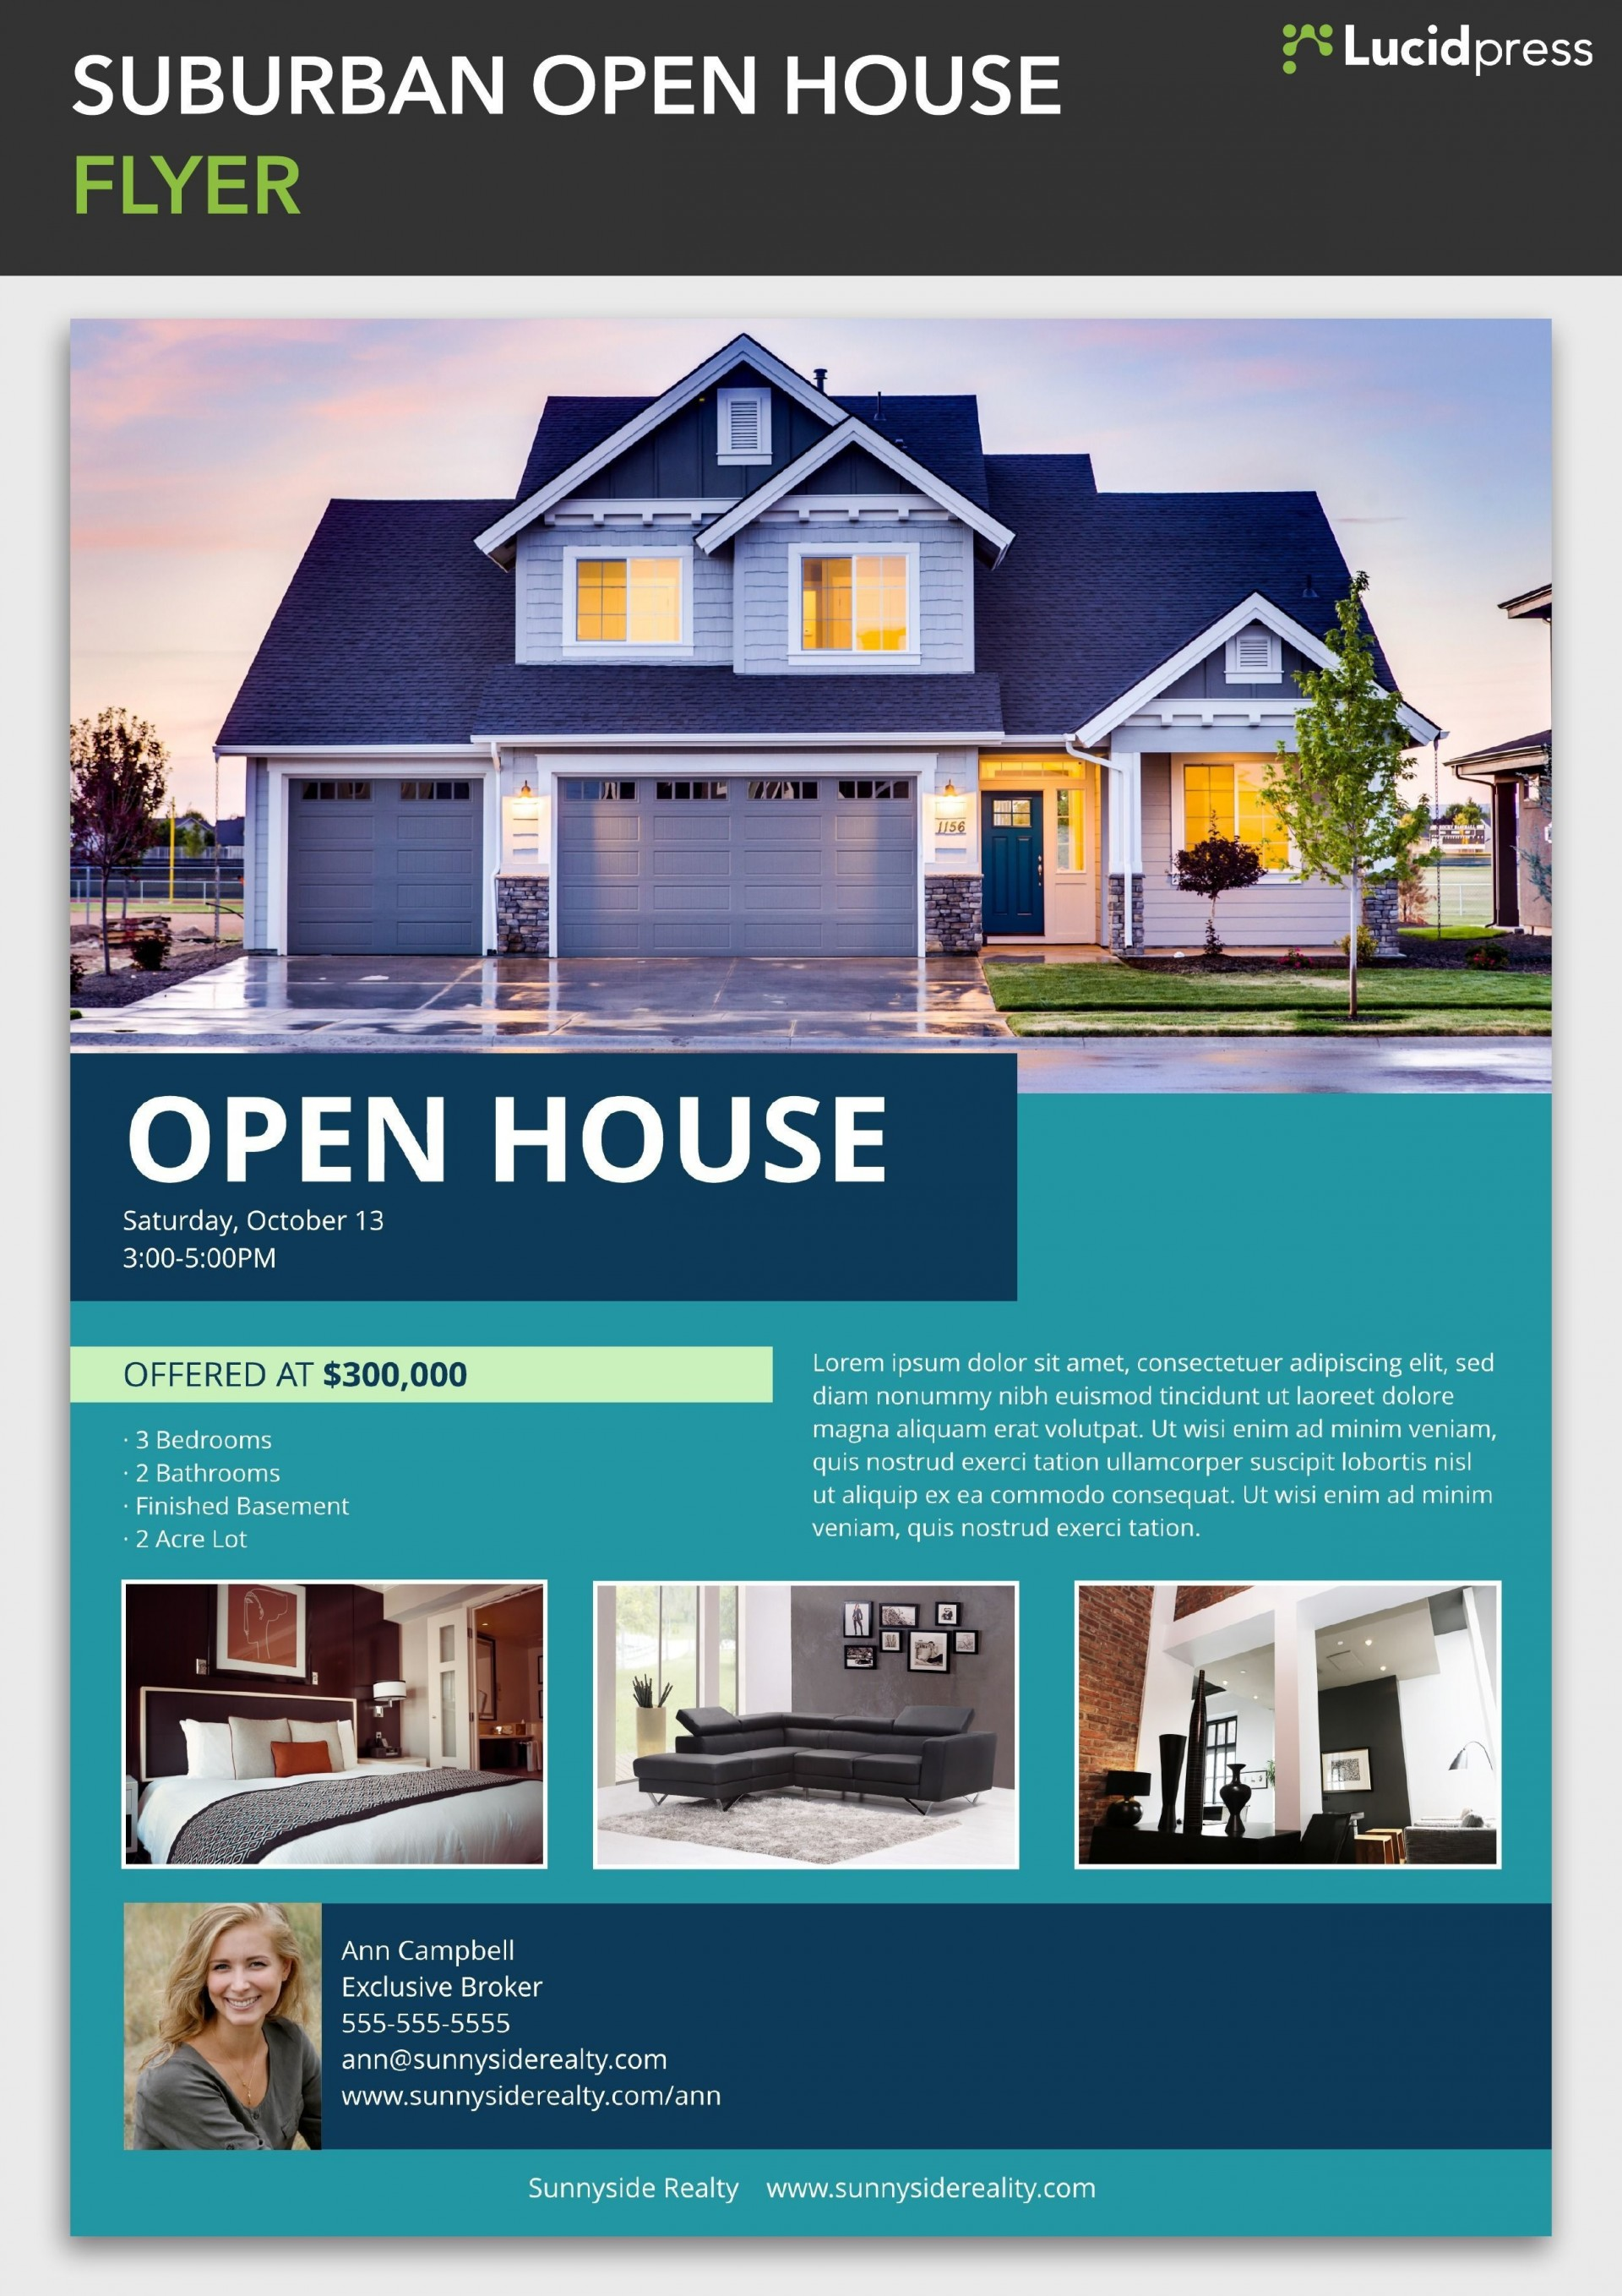 005 Fantastic Open House Flyer Template Free High Definition  Microsoft Word School Christma1920